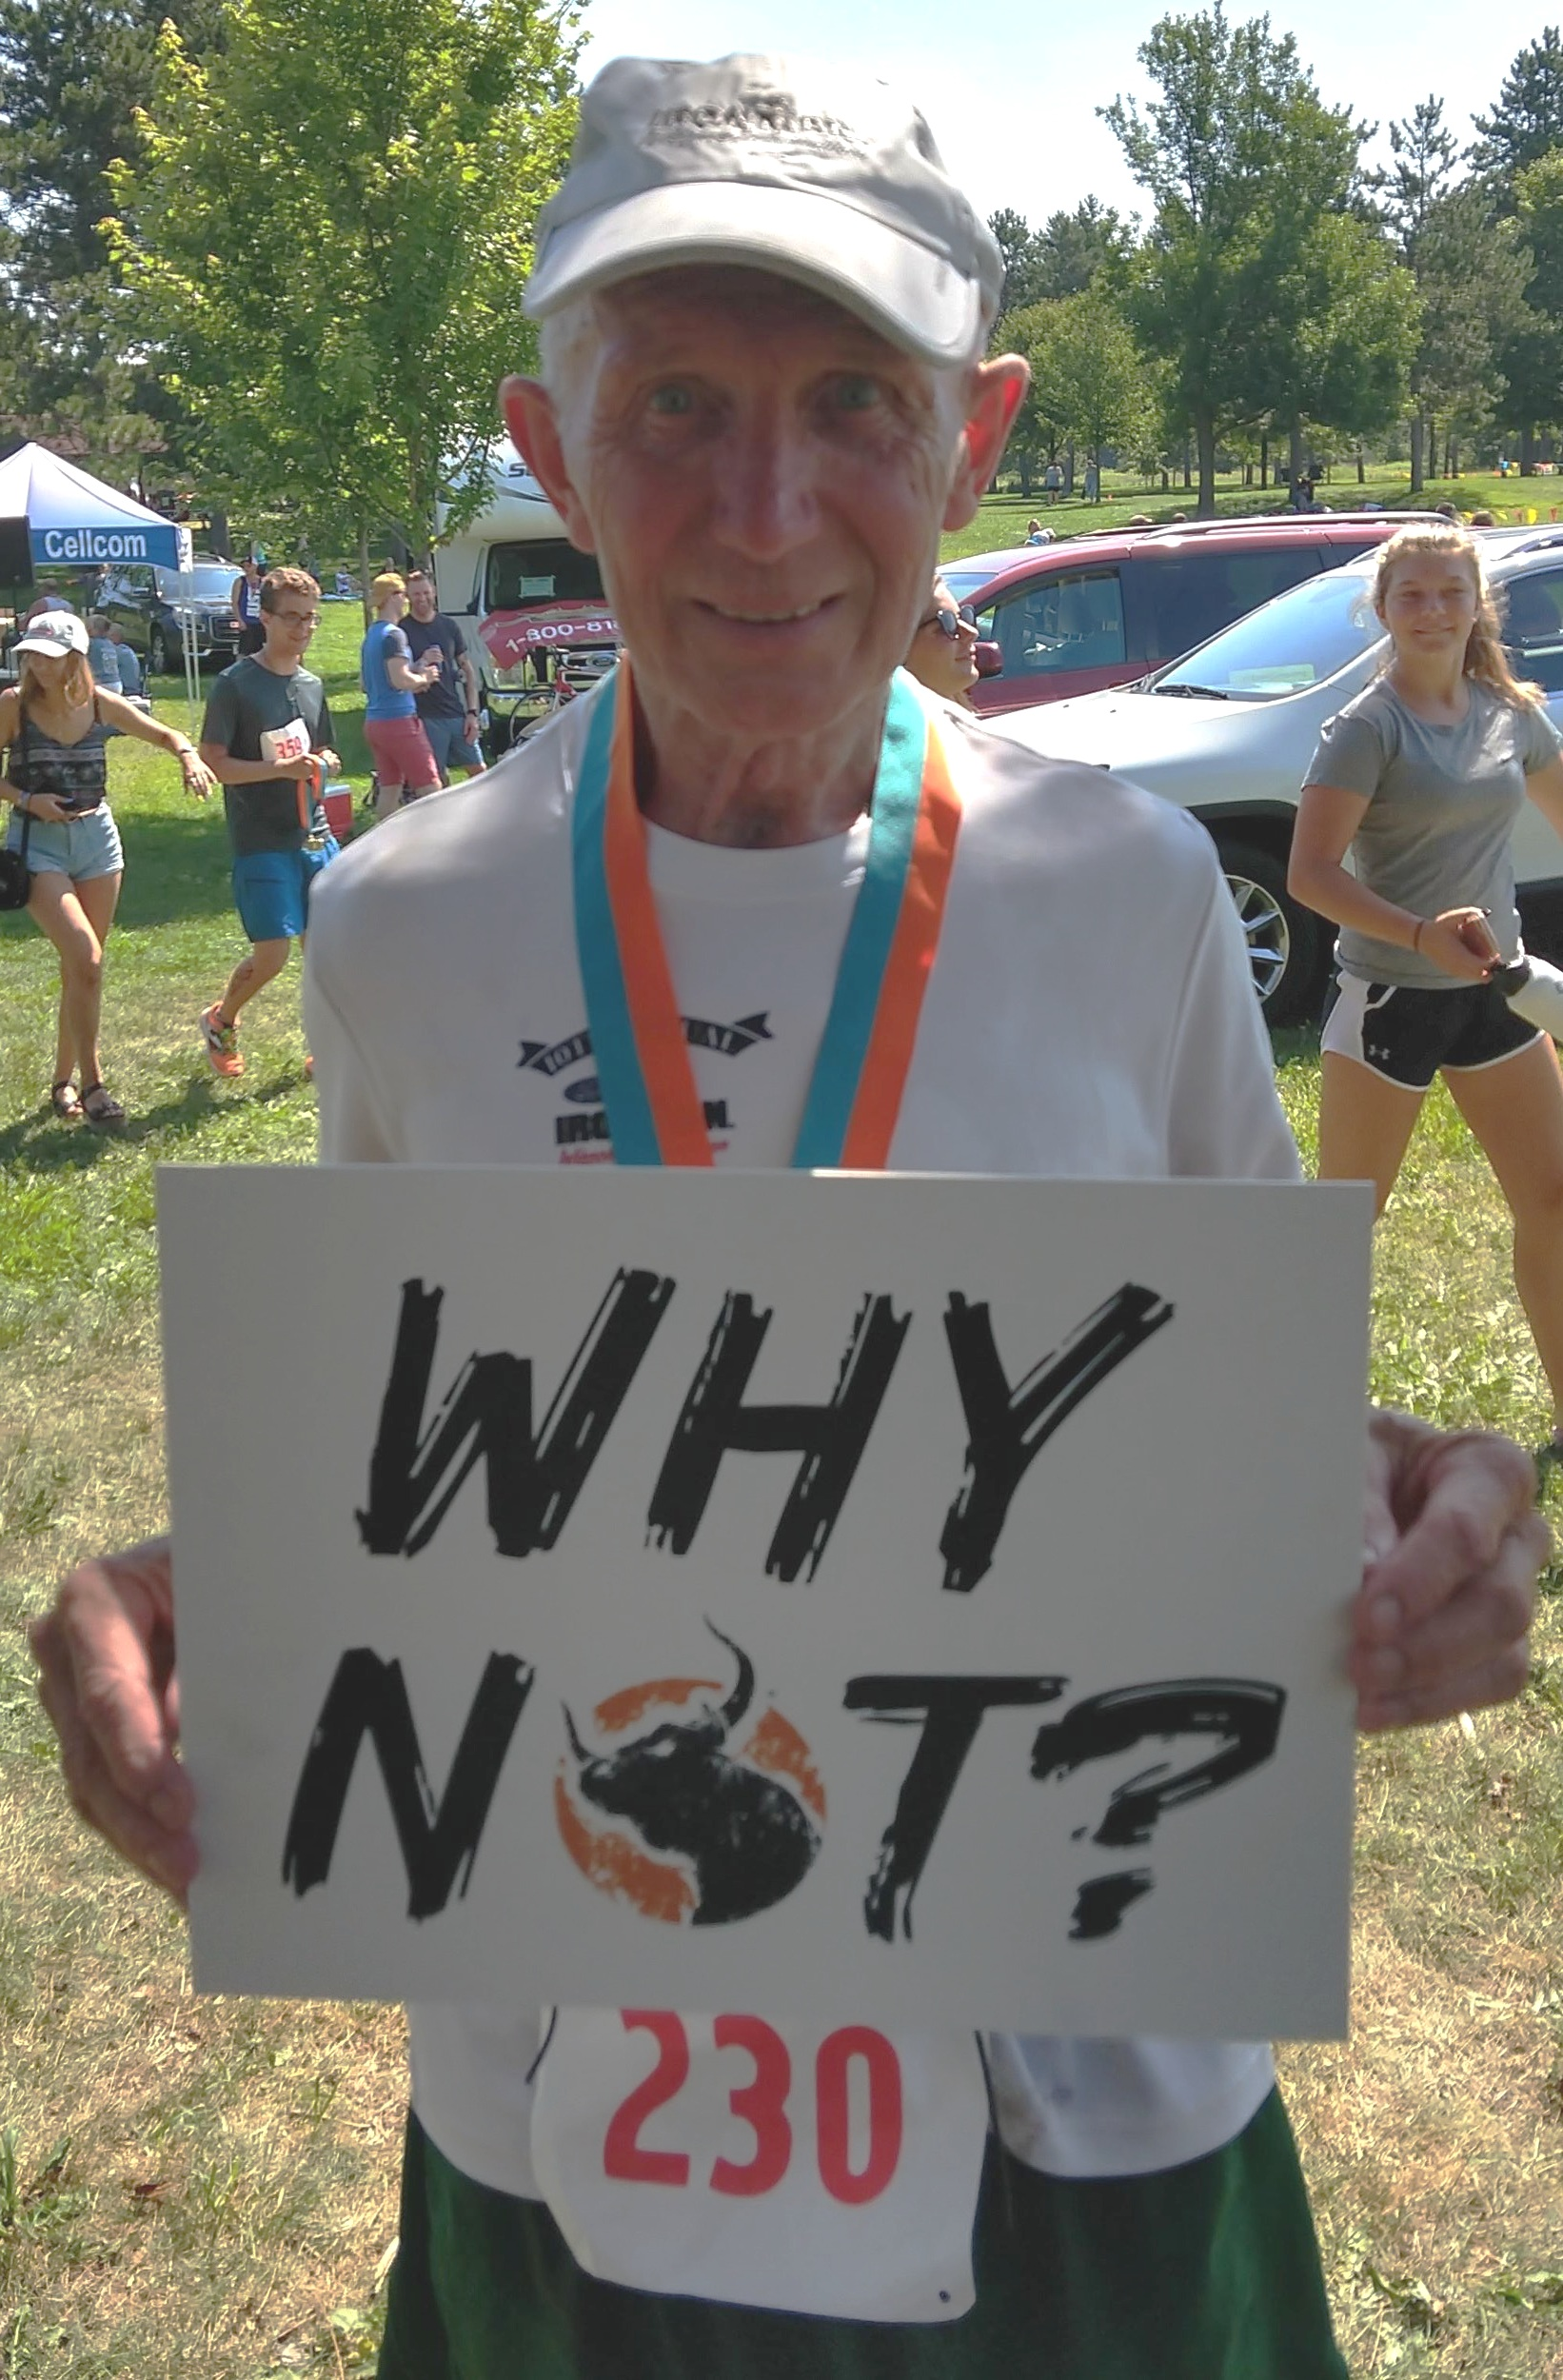 Finishing the Woodson YMCA triathlon every year for 40 years takes a 'WHY NOT?' attitude.